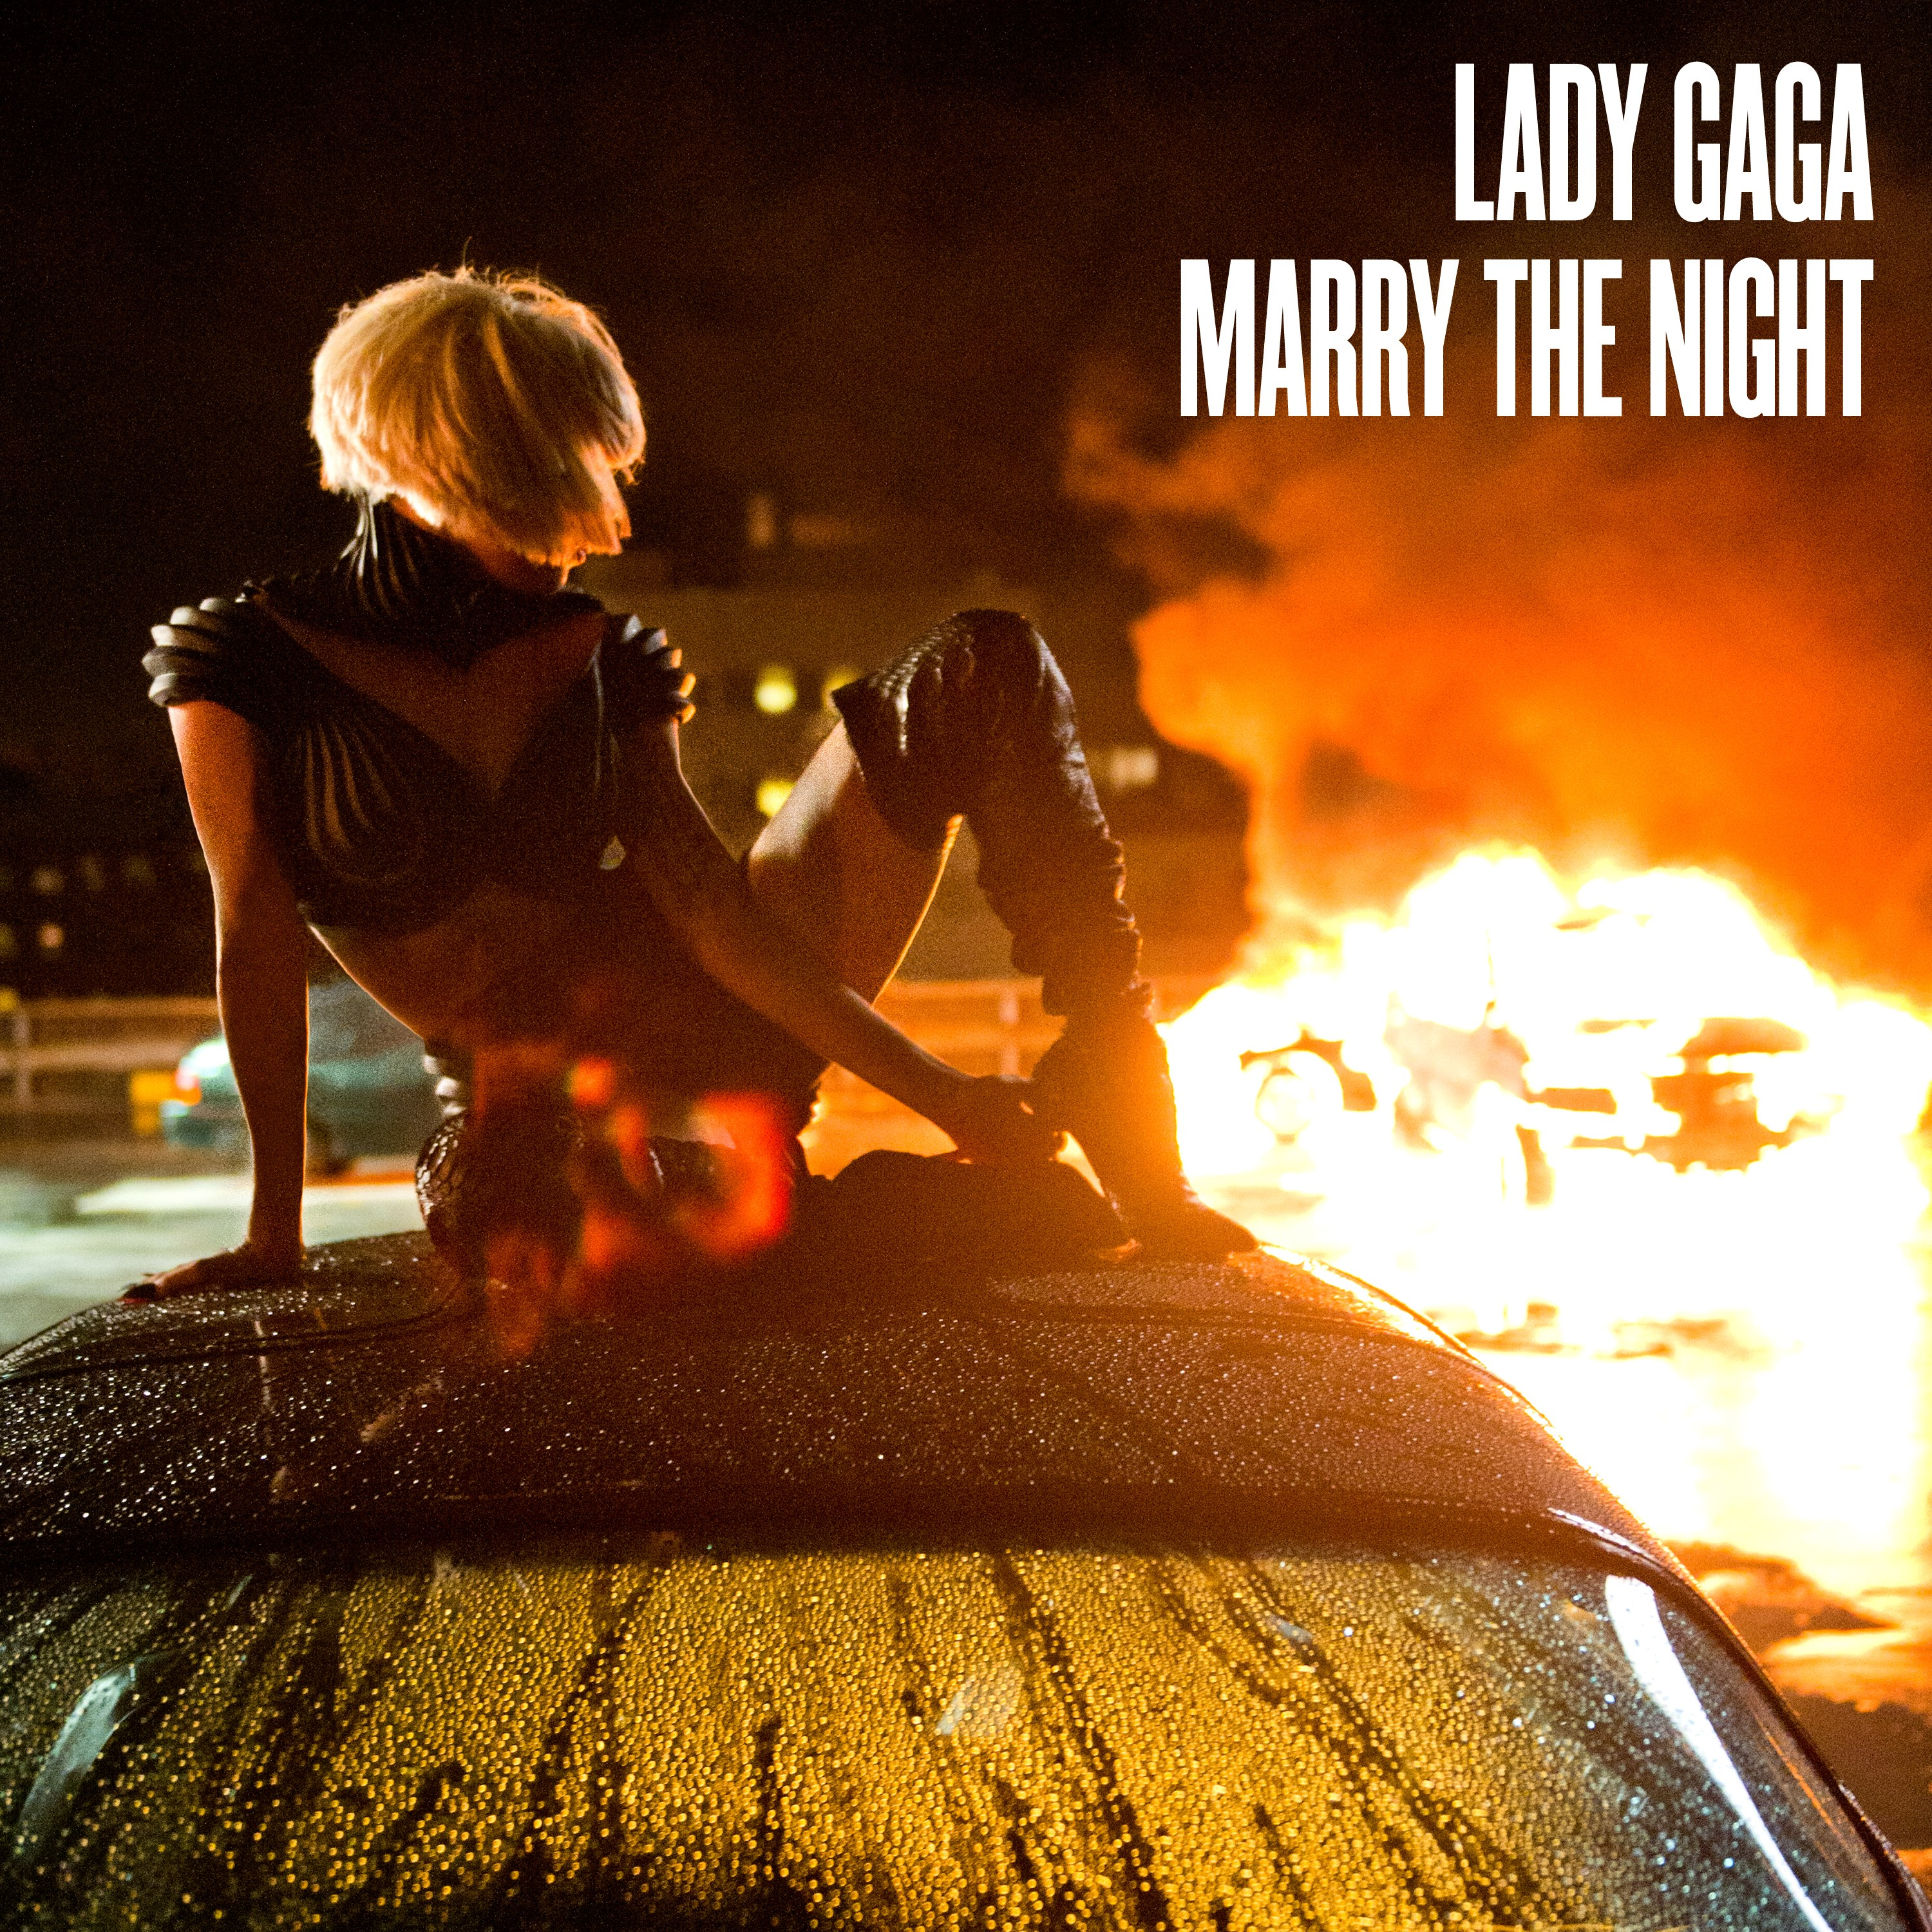 http://images.wikia.com/ladygaga/images/f/fb/MarryTheNight-SinglerCover.jpg